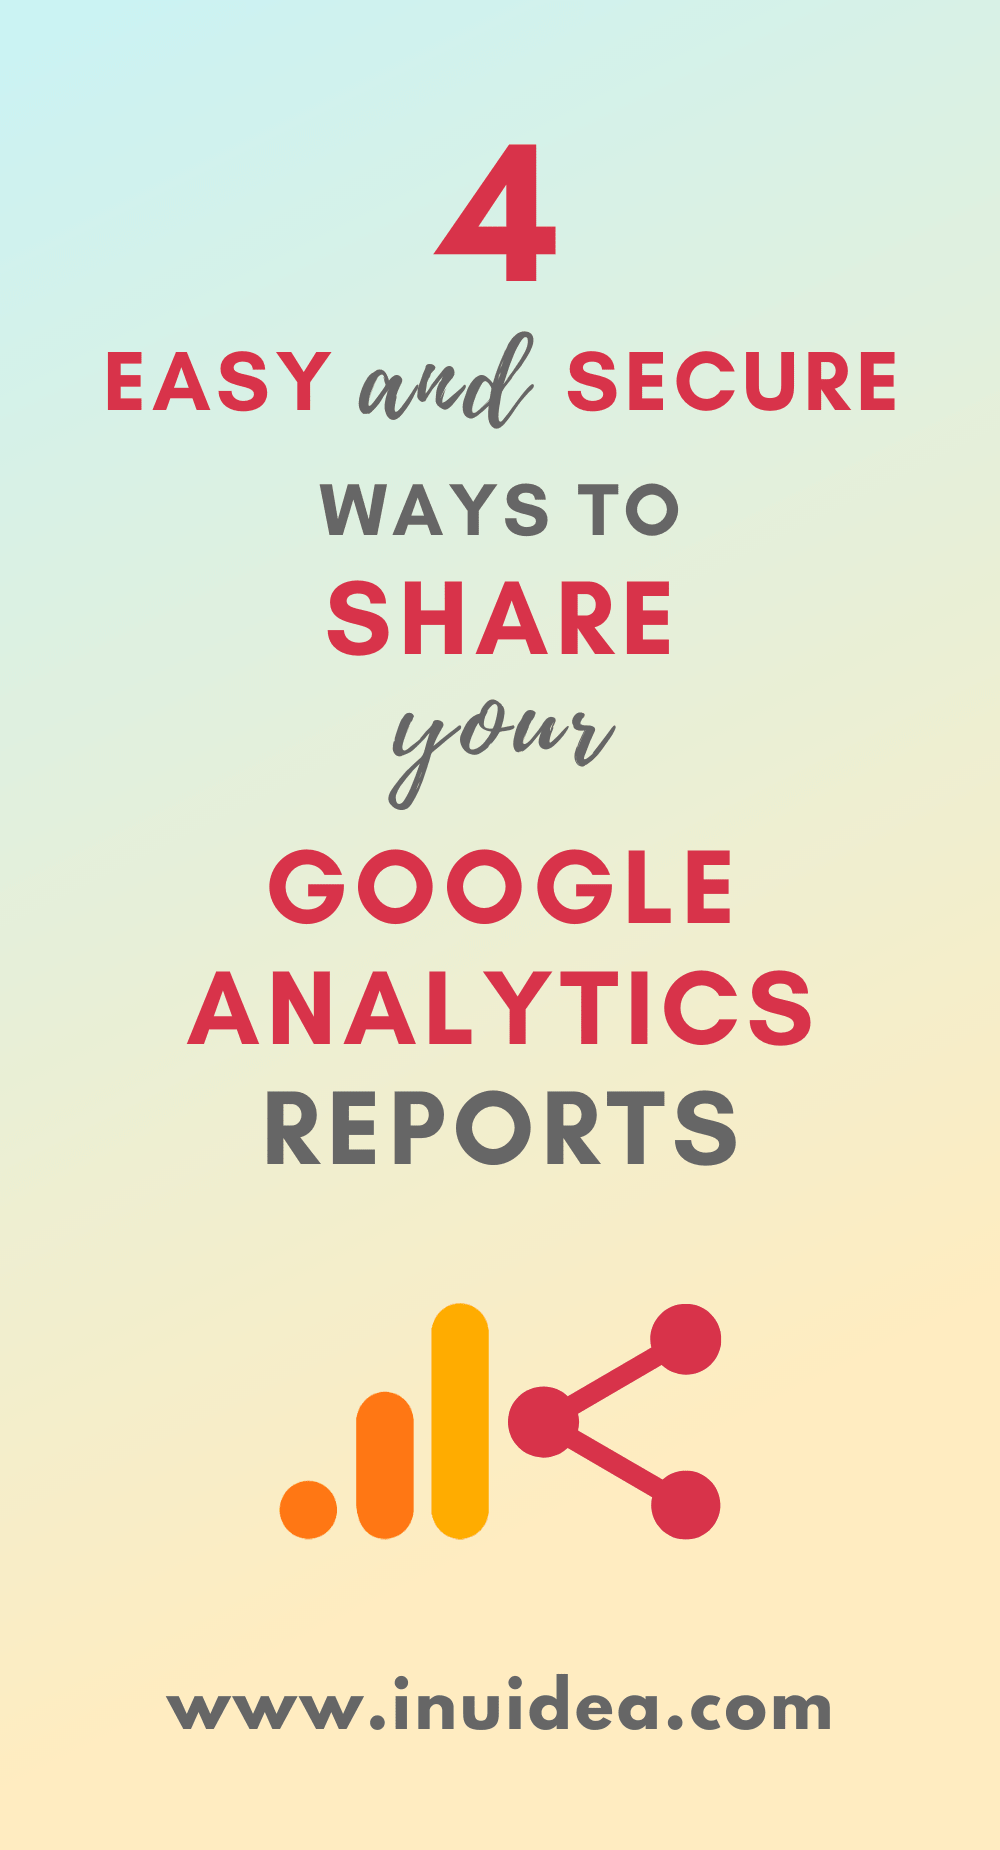 4 Easy and Secure Ways to Share Your Google Analytics Reports with Others